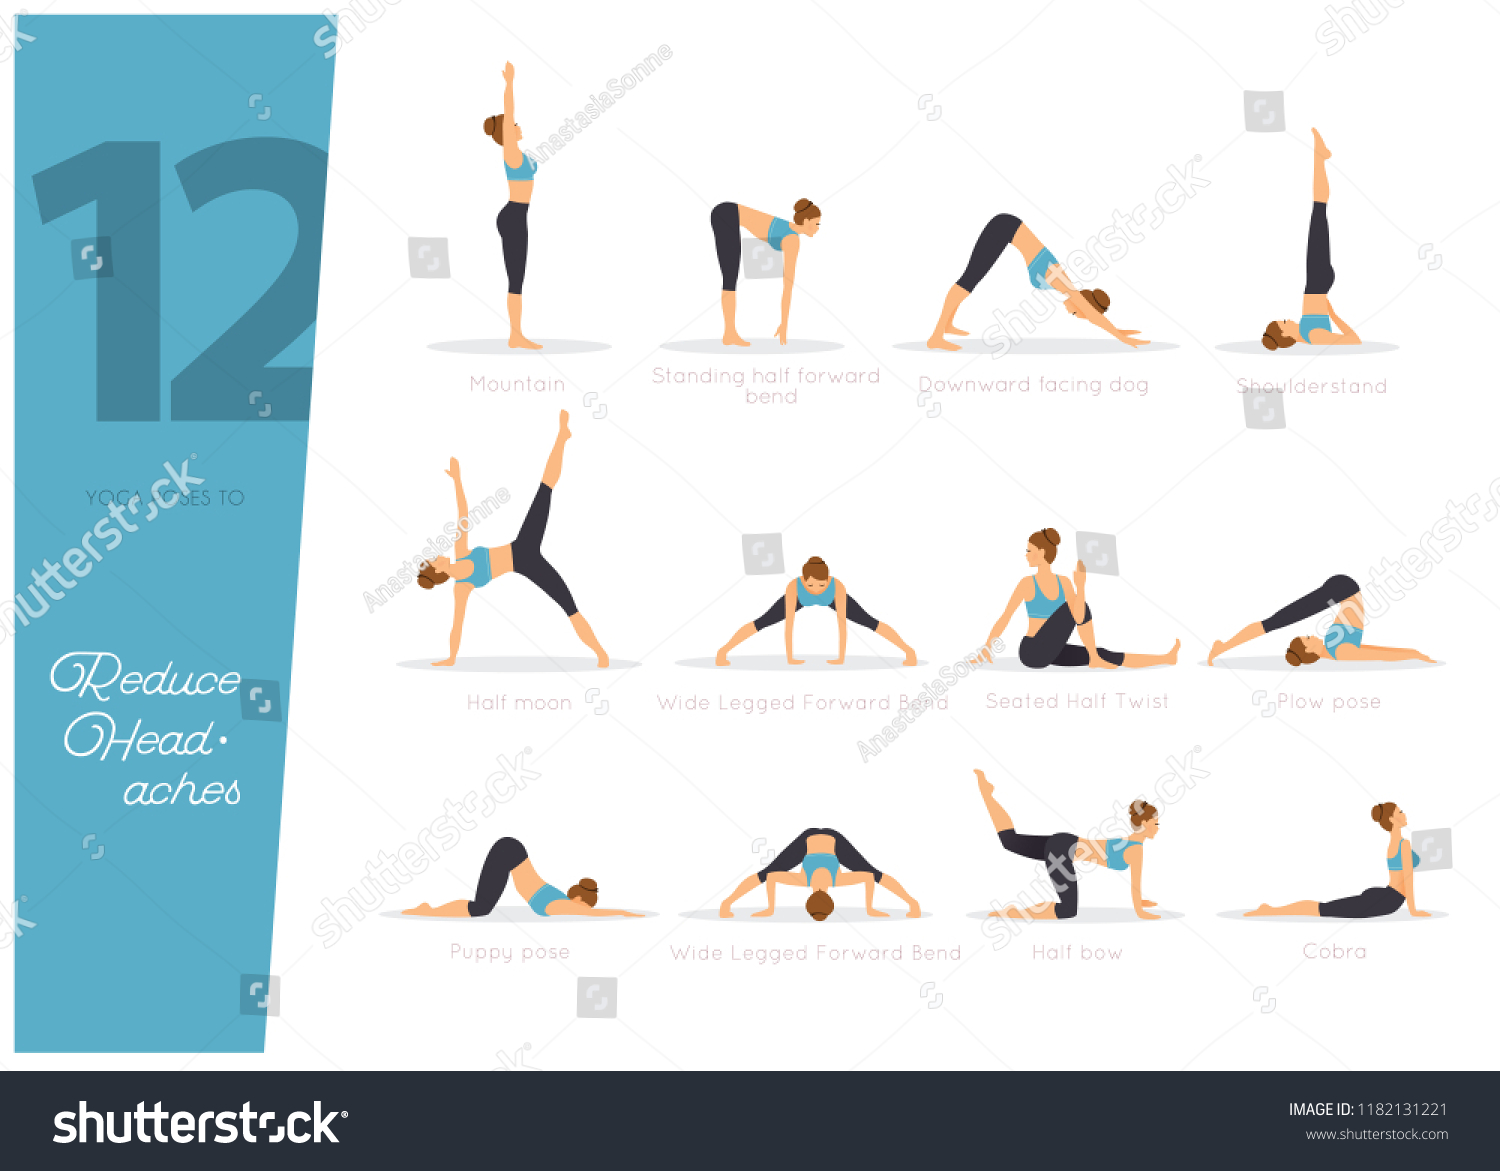 4 Yoga Poses Reduce Headaches Stock Vector (Royalty Free) 118213421